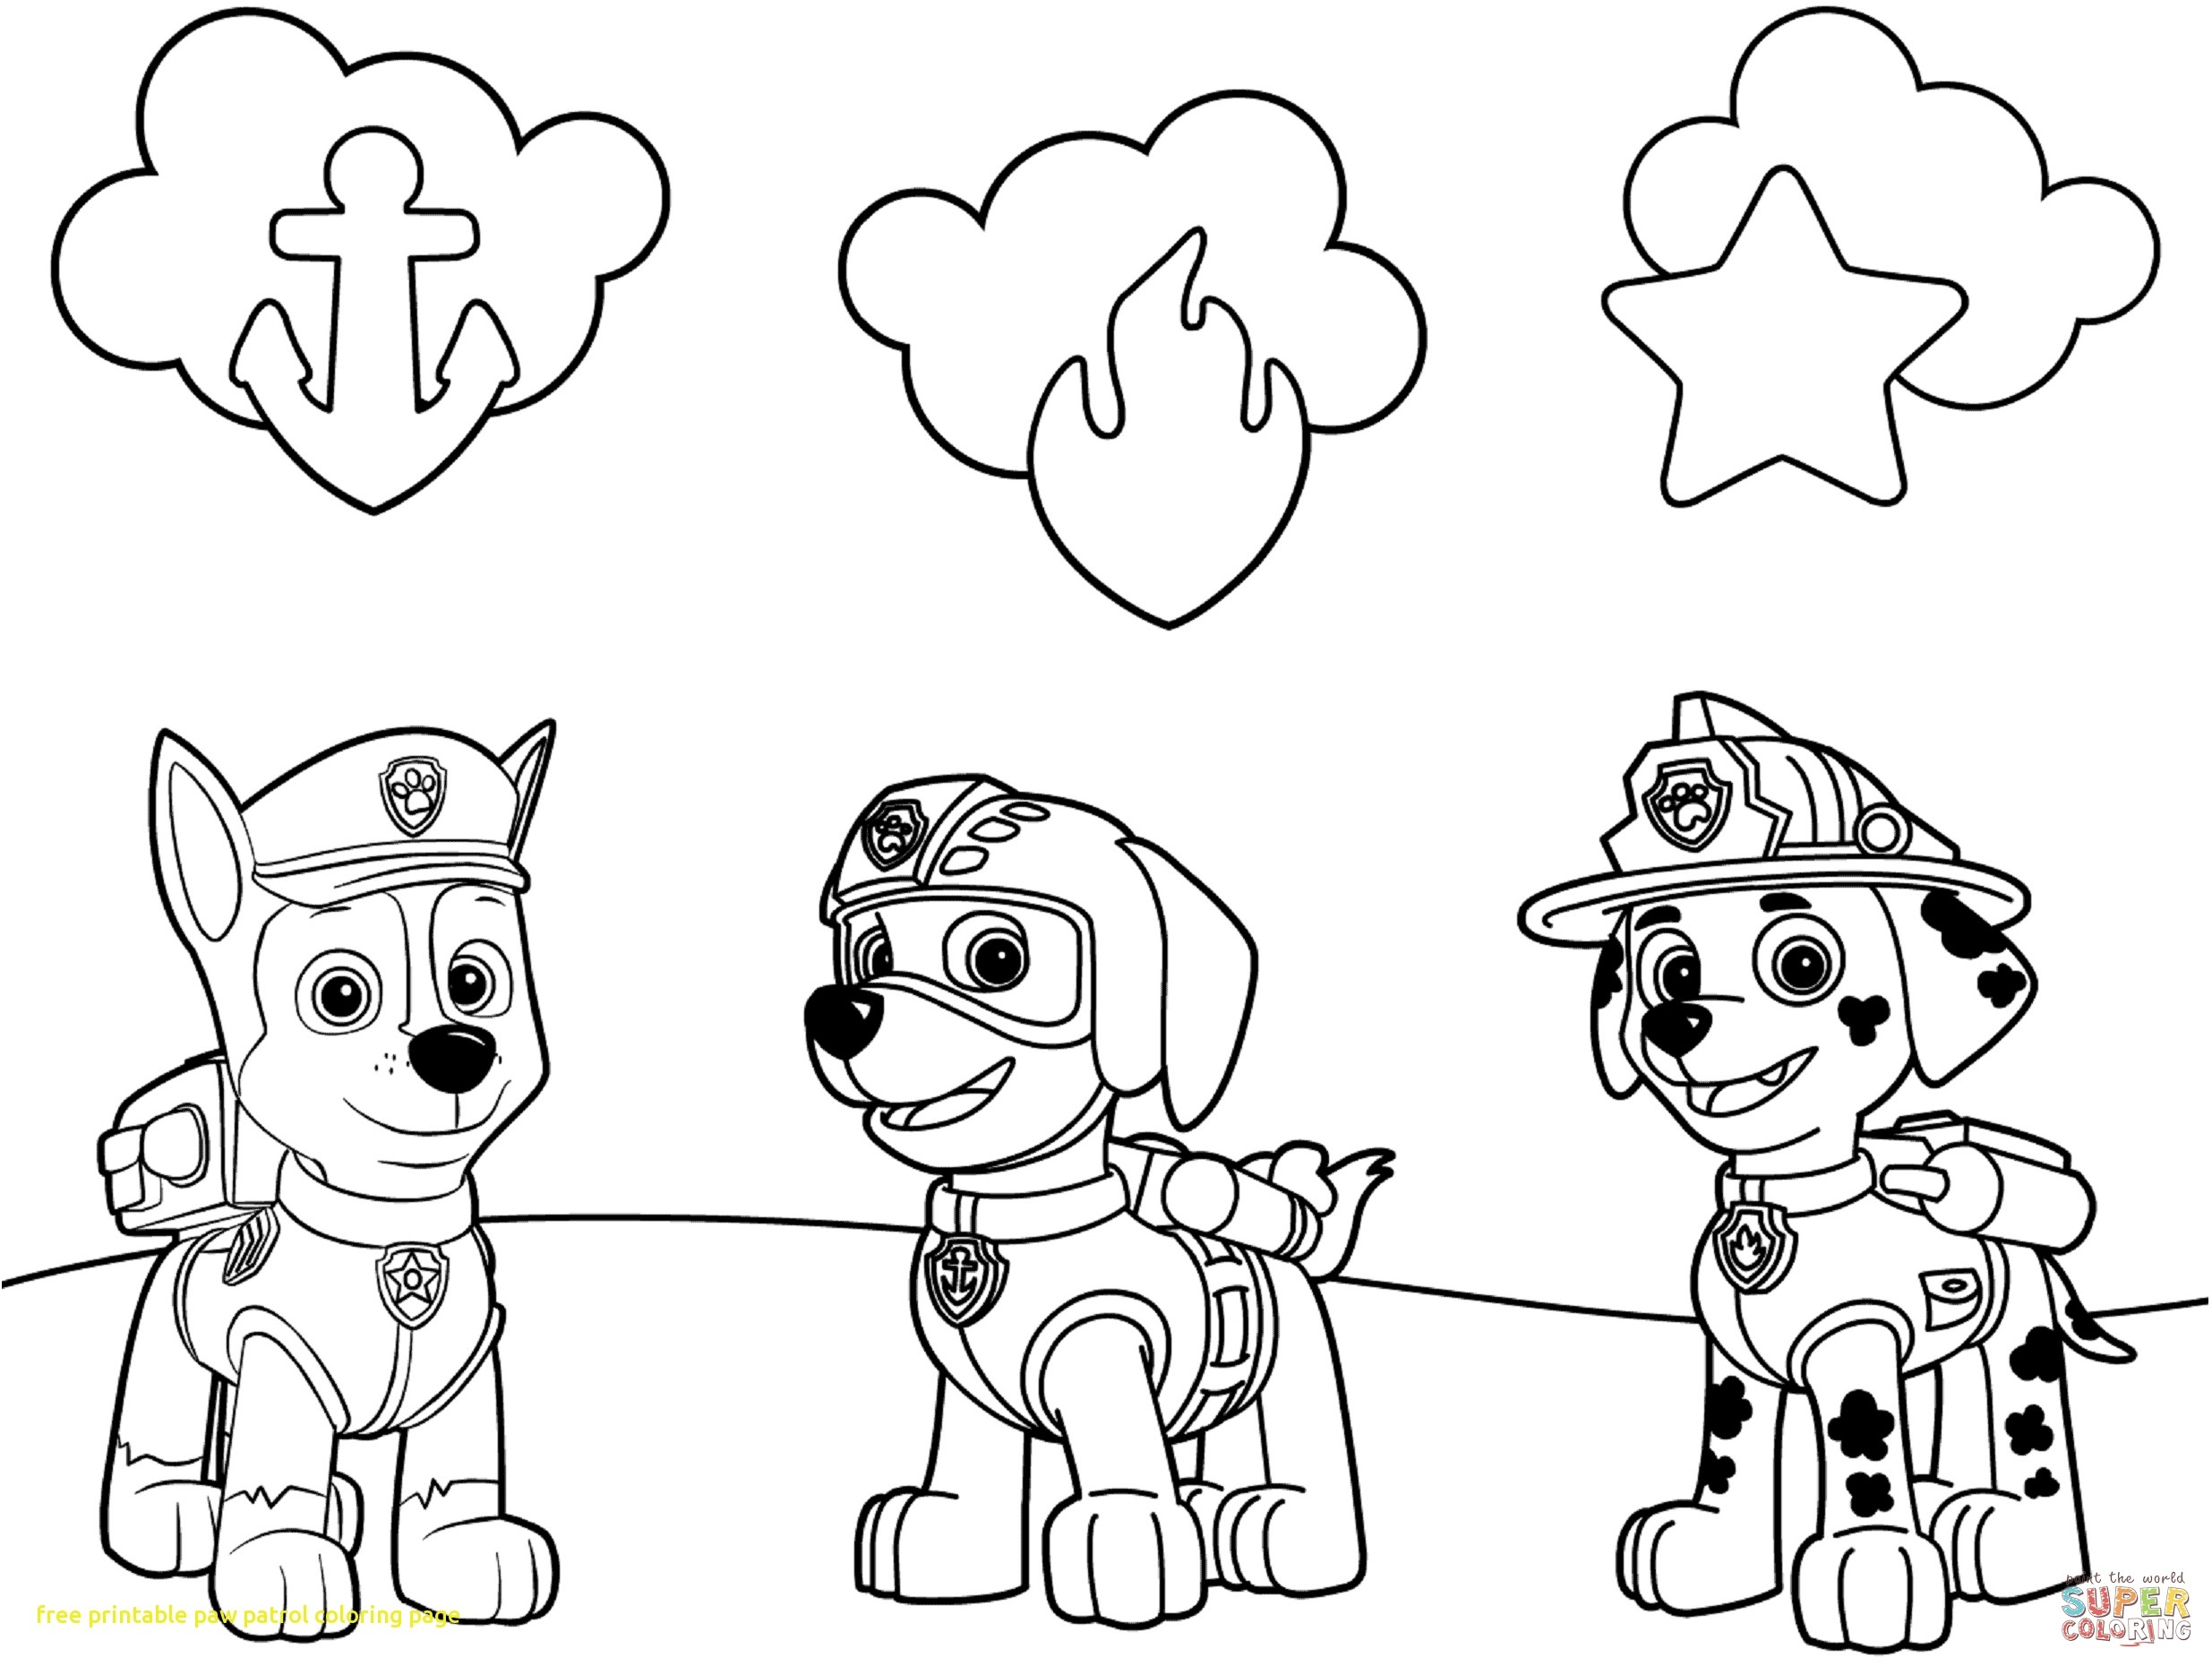 2470x1860 Reliable Chase Paw Patrol Coloring Page Christ